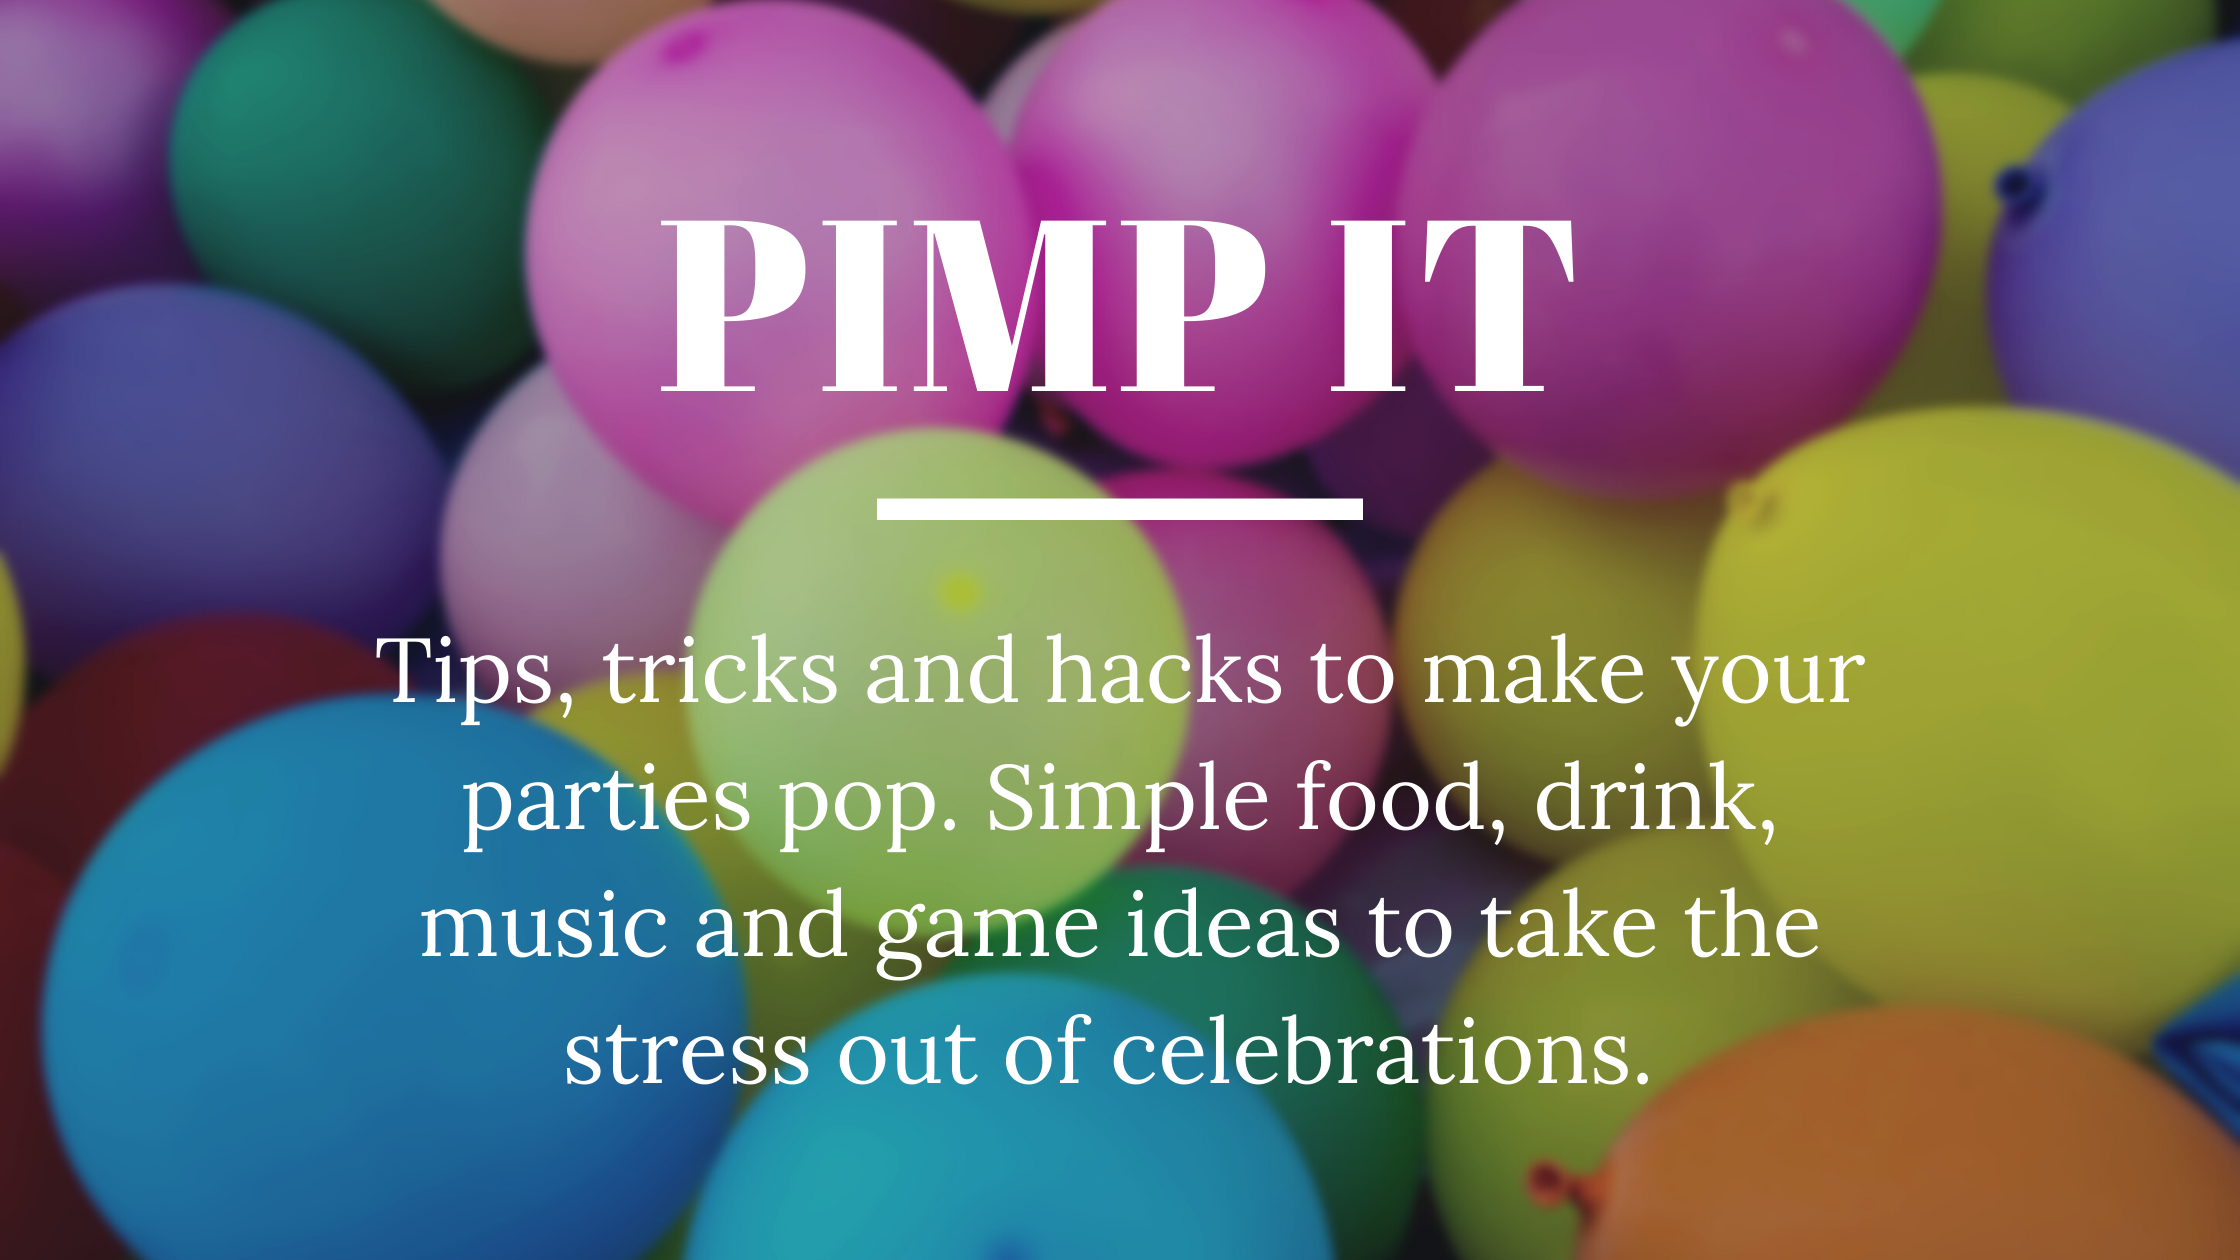 Pimp it - tips, tricks and hacks to make your parties pop. Simple food, drink, music and game ideas to take the stress out of celebrations.